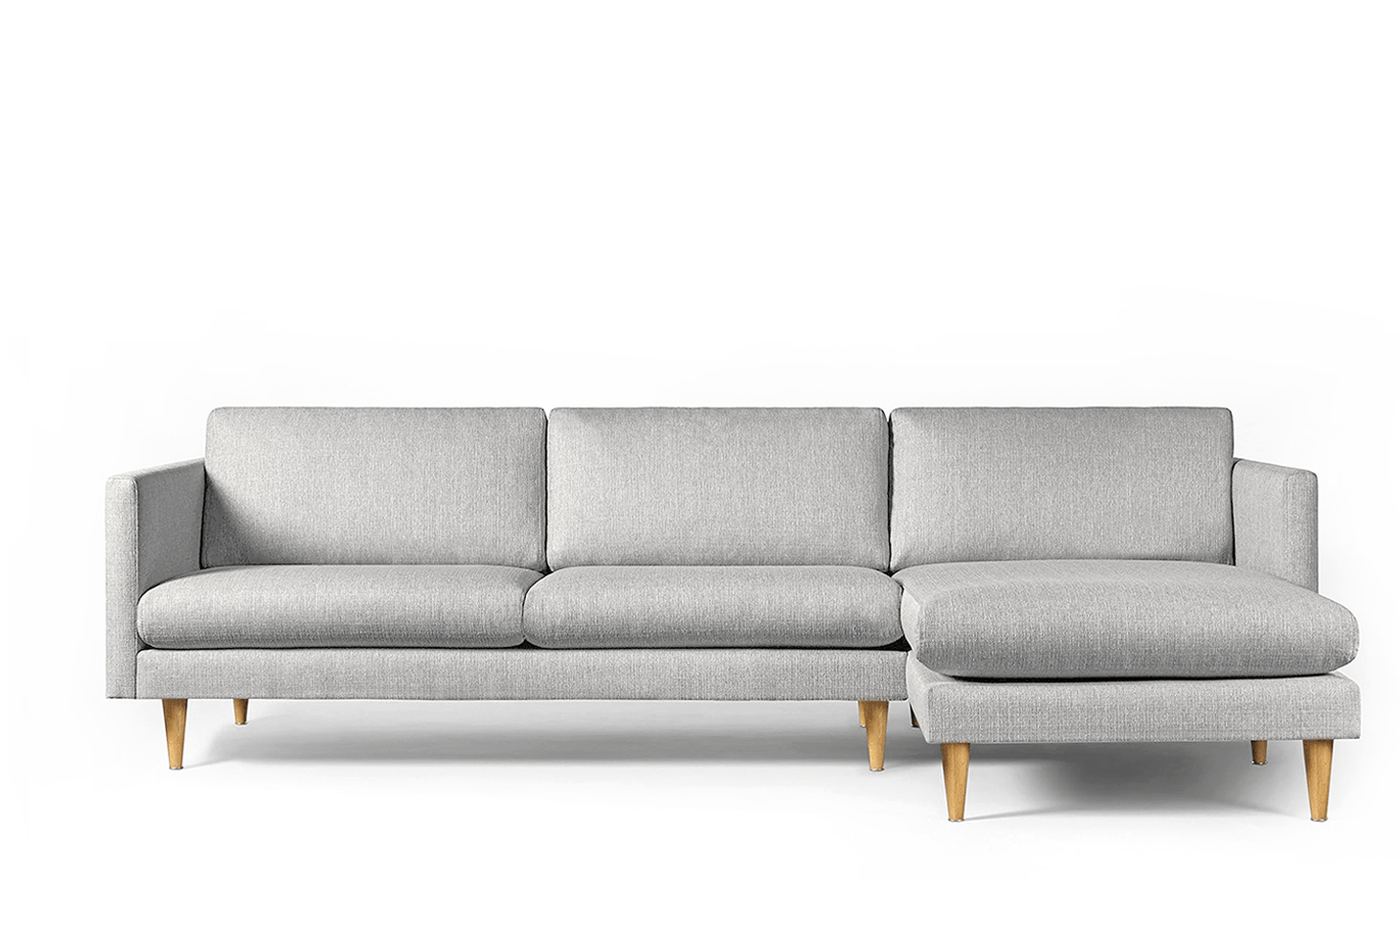 Corner Sofa LEAF, Chaise Lounge on Right - Oot-Oot Studio